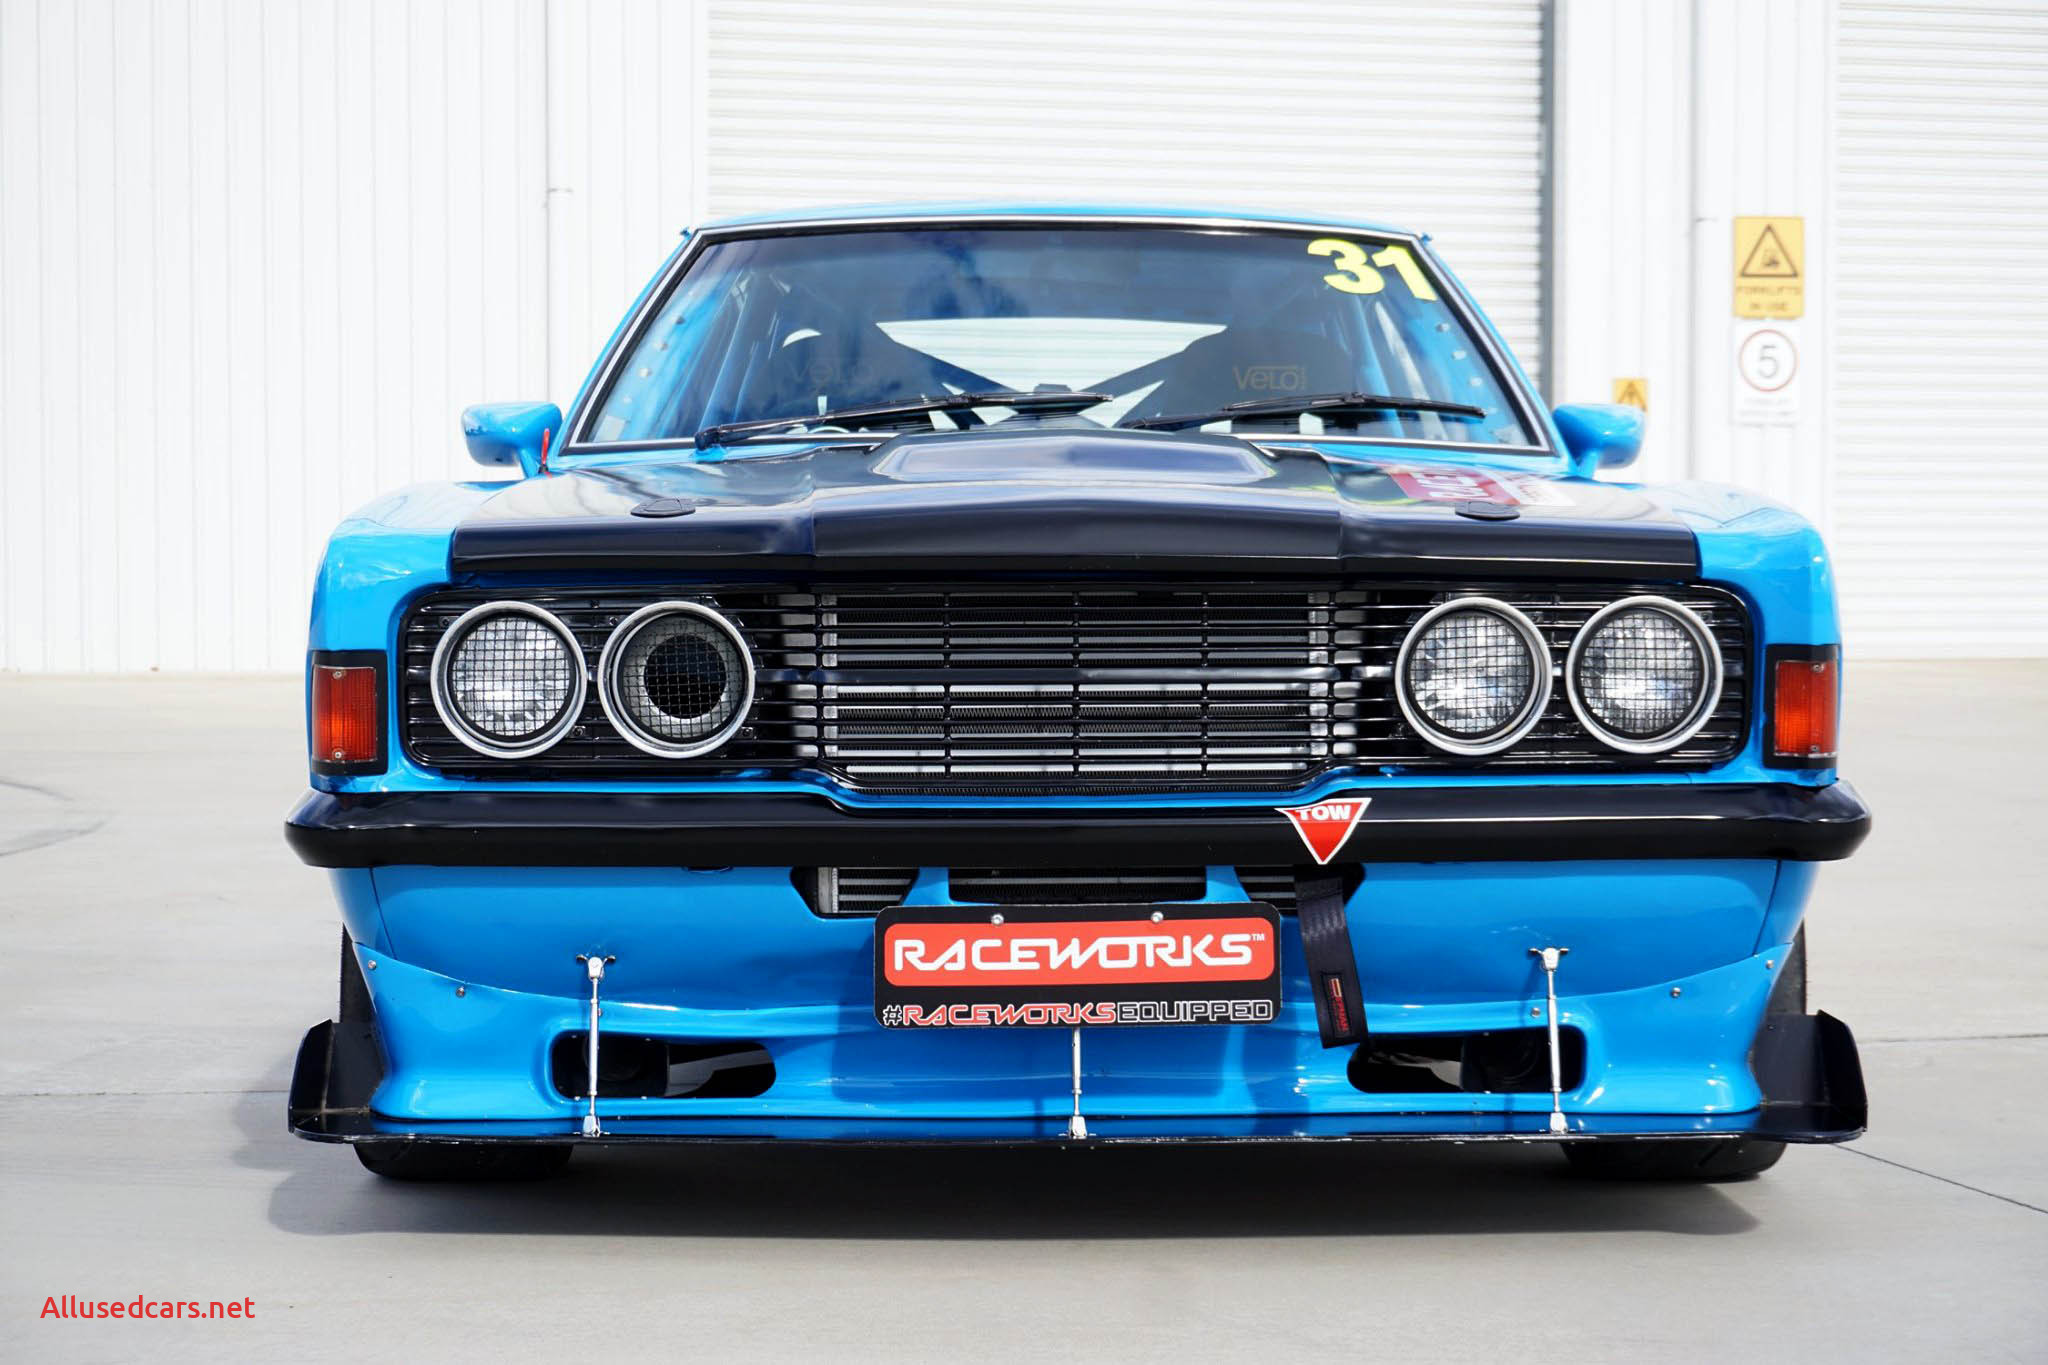 1973 Ford Cortina with a turbo Barra inline six 02